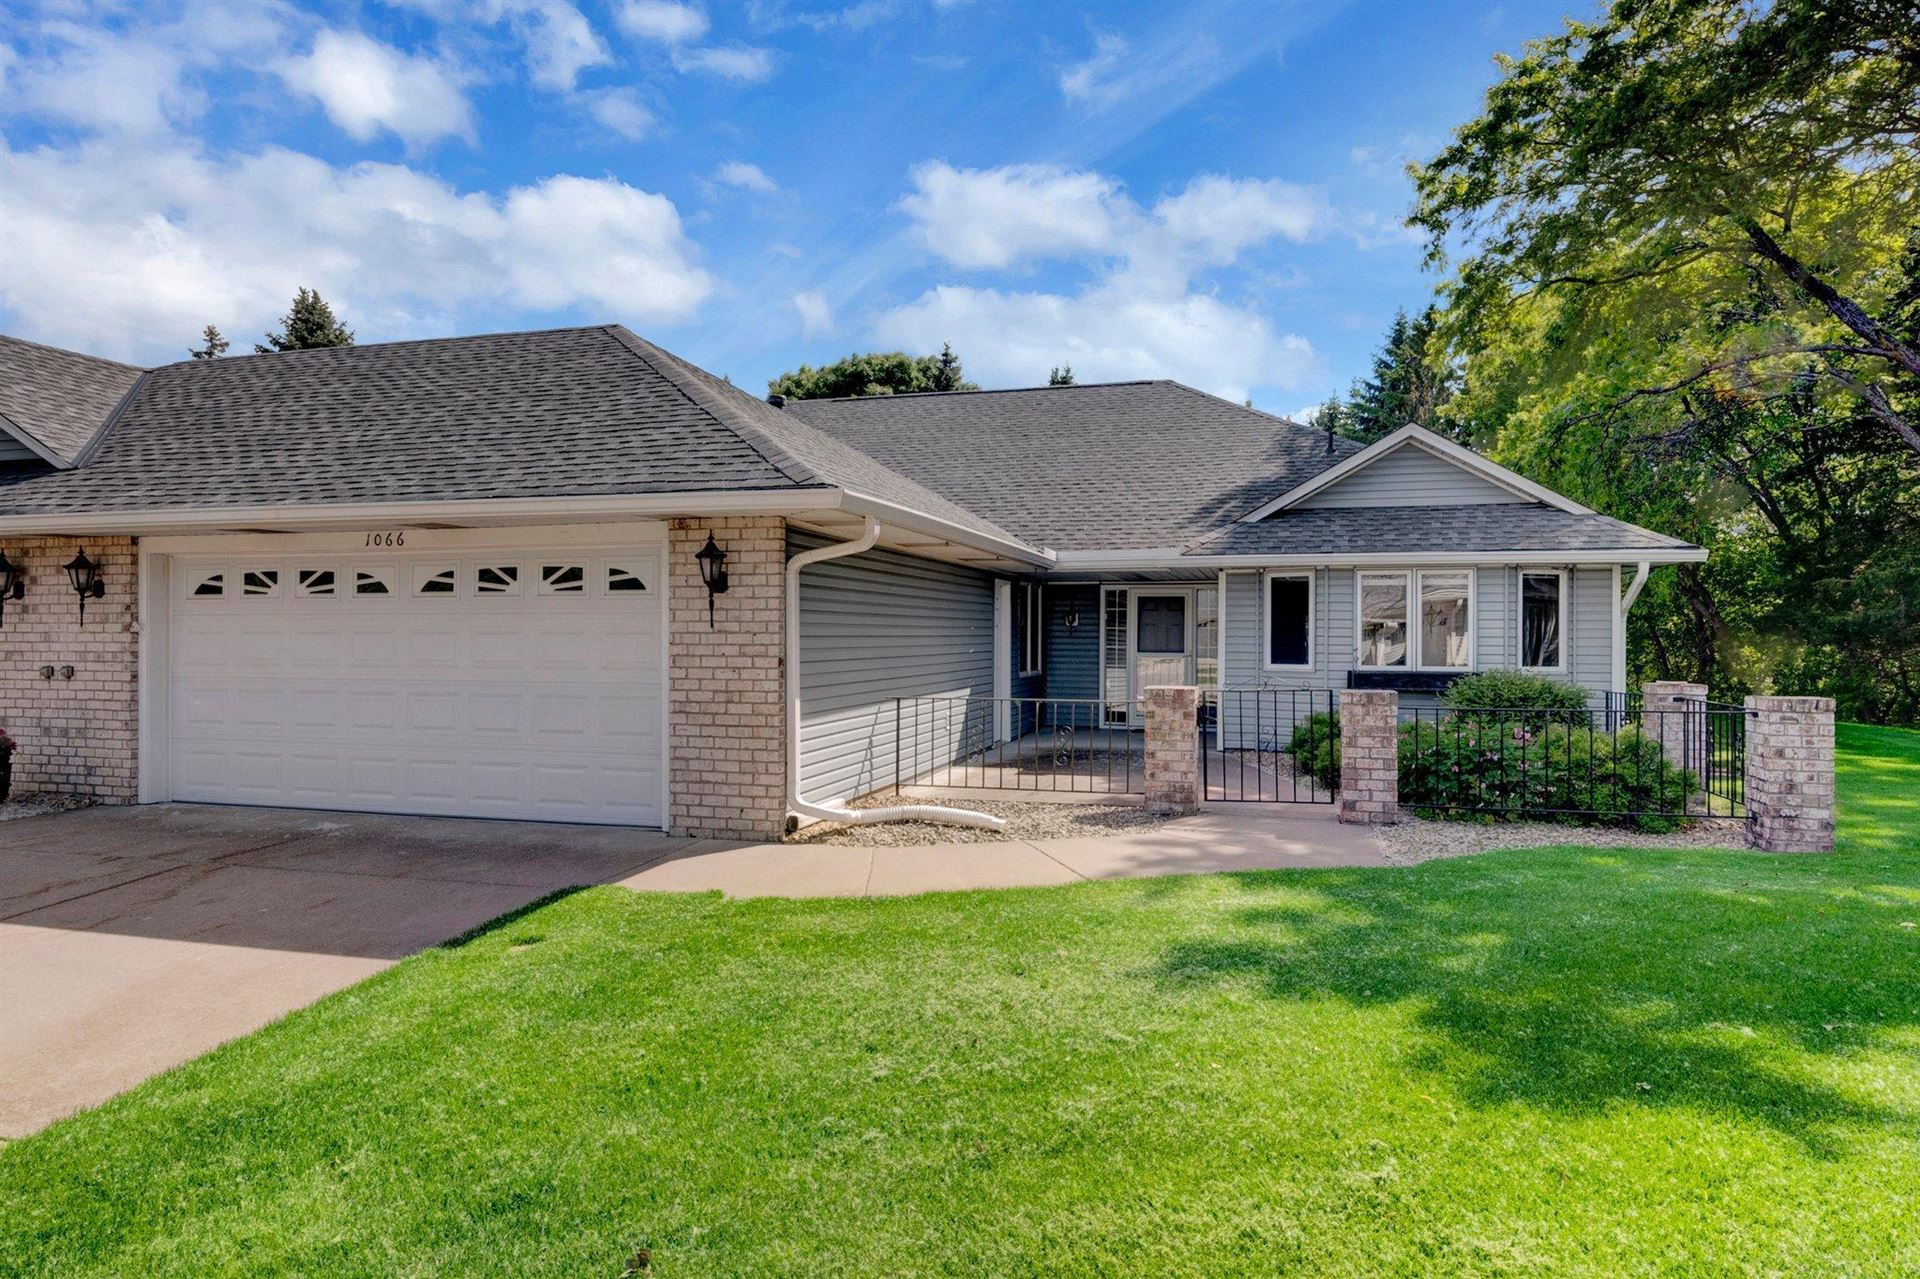 1066 Royal Court, Shoreview, MN 55126 - MLS#: 5764064